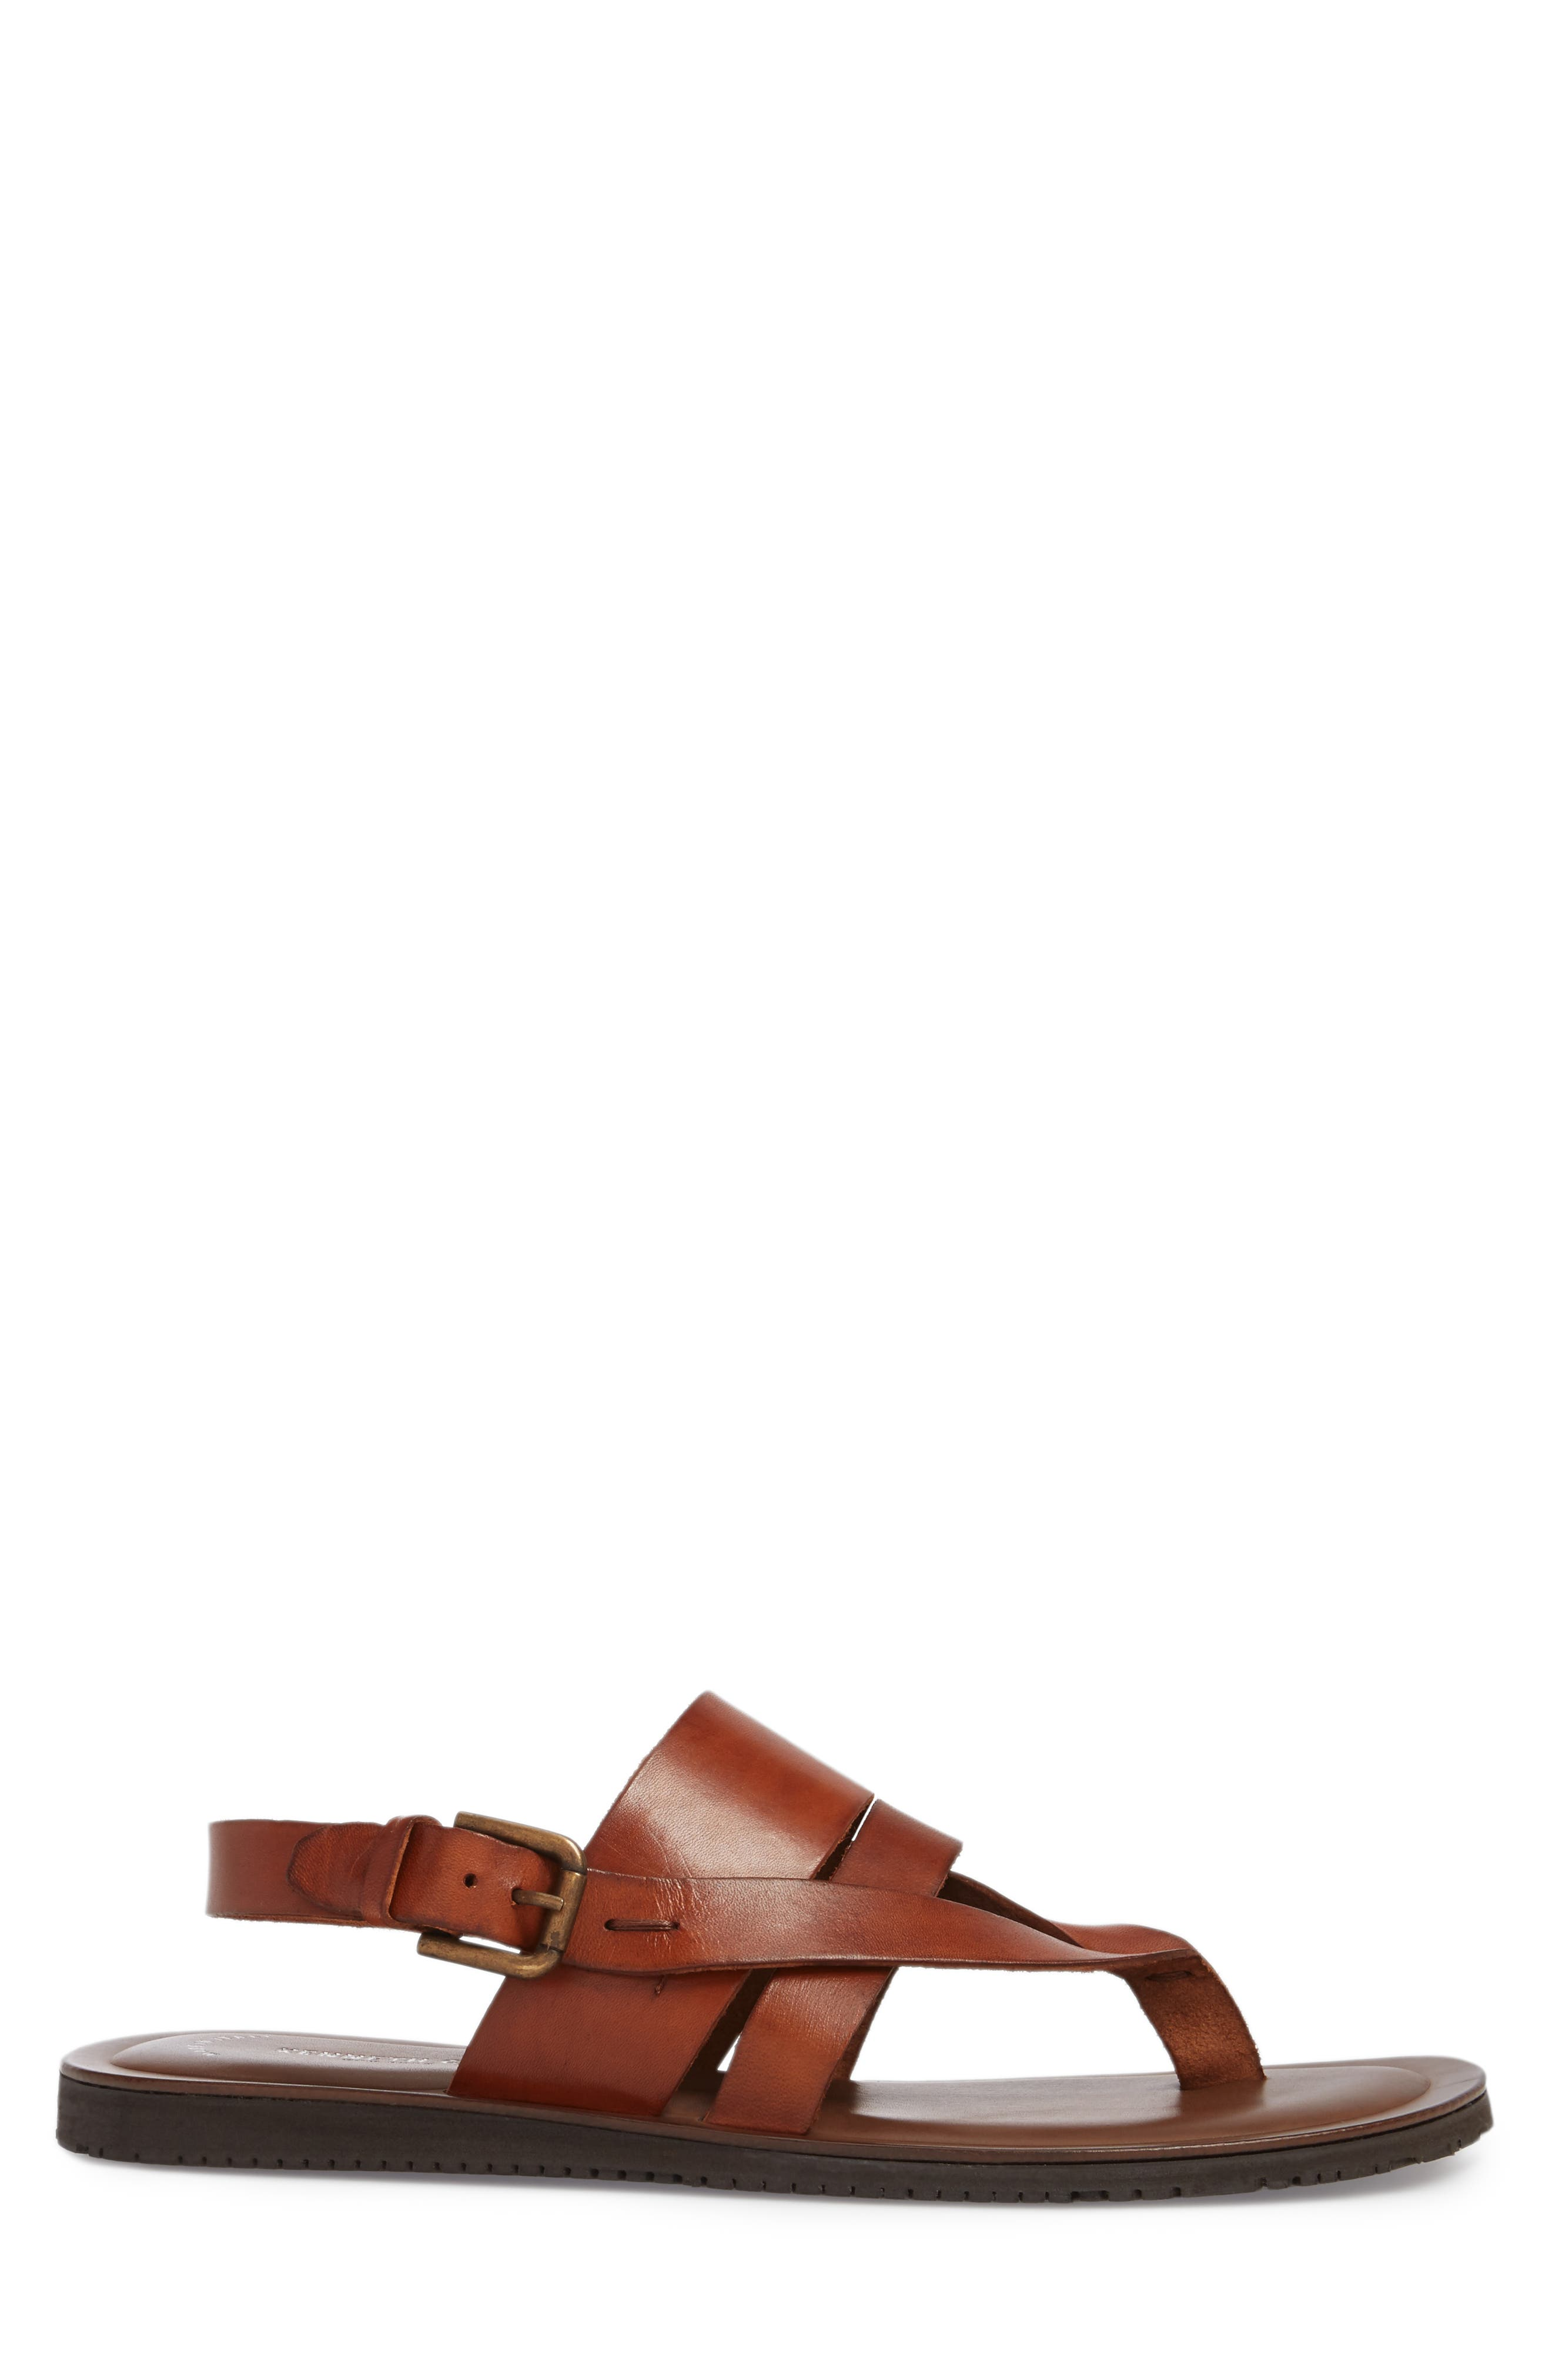 KENNETH COLE NEW YORK, 'Reel-Ist' Sandal, Alternate thumbnail 3, color, COGNAC LEATHER